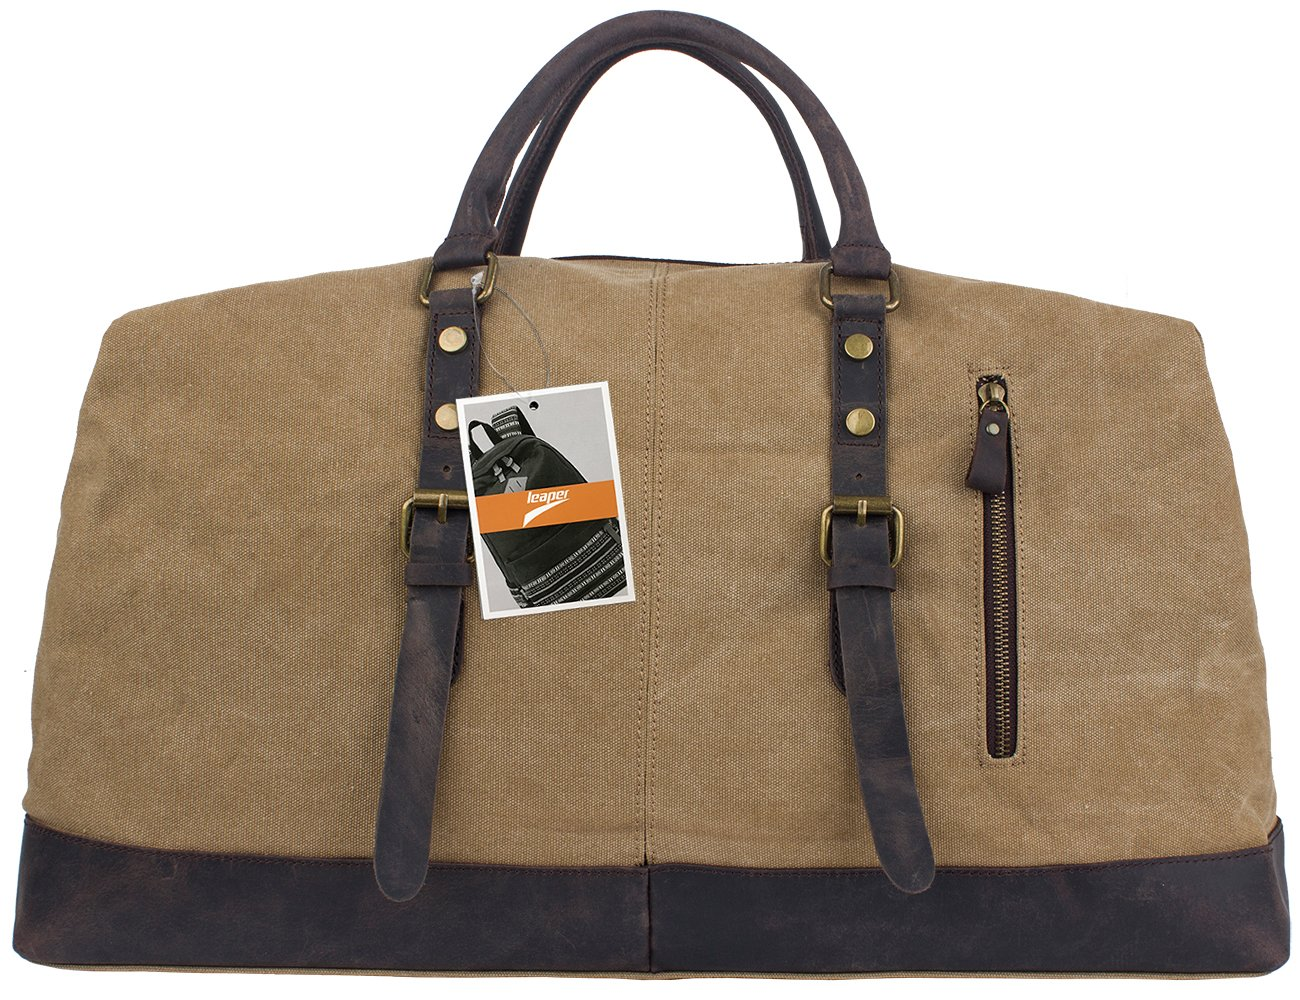 Leaper Mens Canvas Leather Travel Duffle Bag Sport Outdoor Holdall Overnight  Extra Large Weekender Satchel Hand Shoulder Bag 21.2 9 15.6inch Khaki  ... a2c7dc7515271